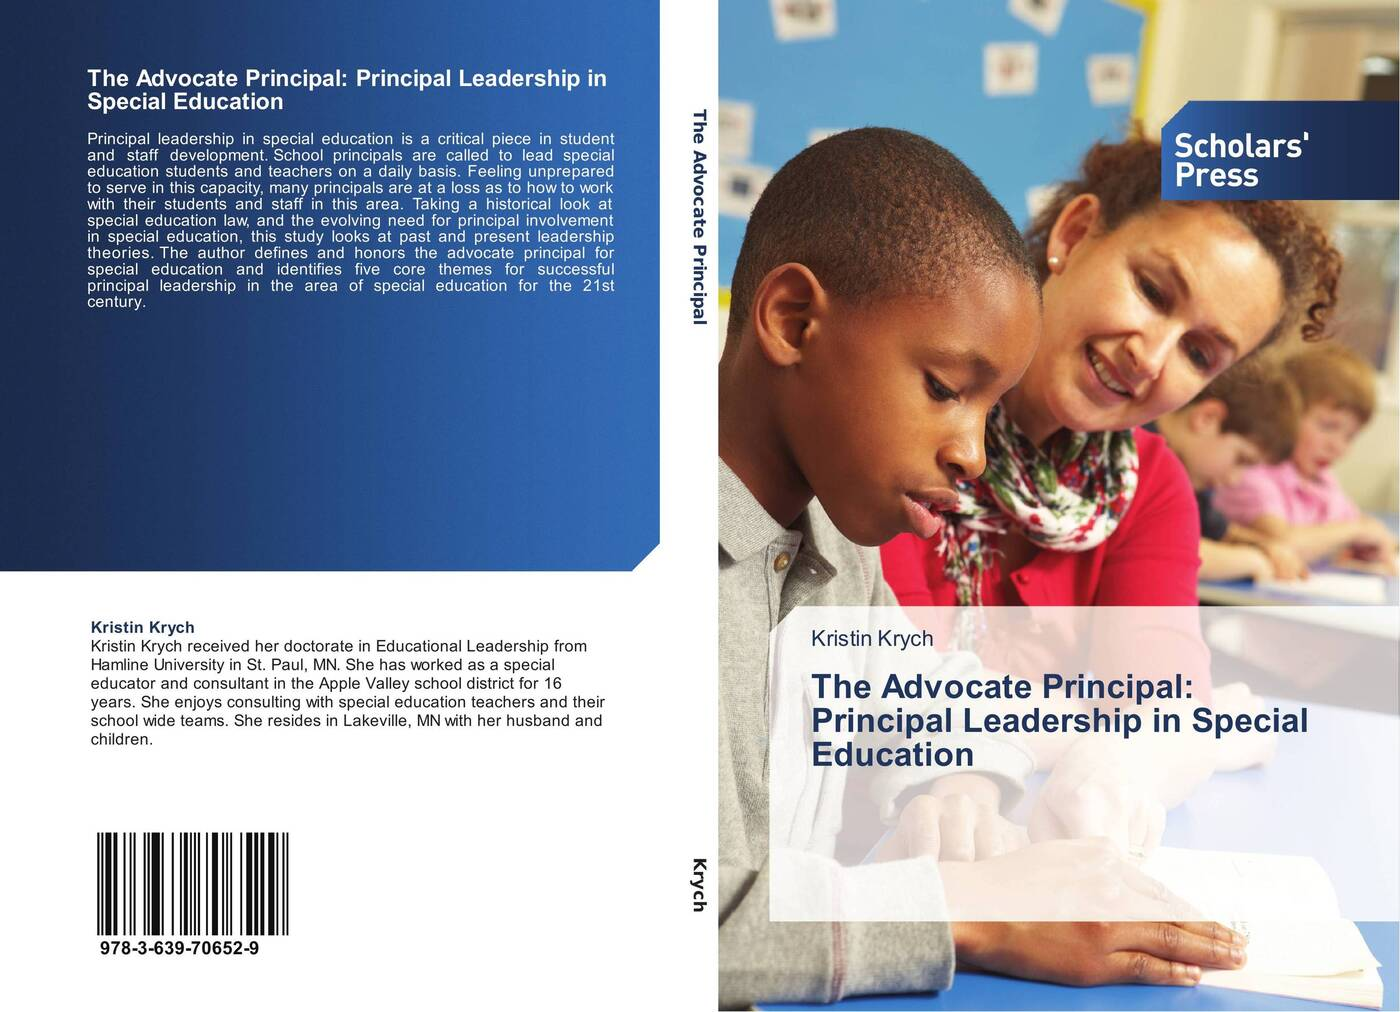 Kristin Krych The Advocate Principal: Principal Leadership in Special Education leadership and policy in education